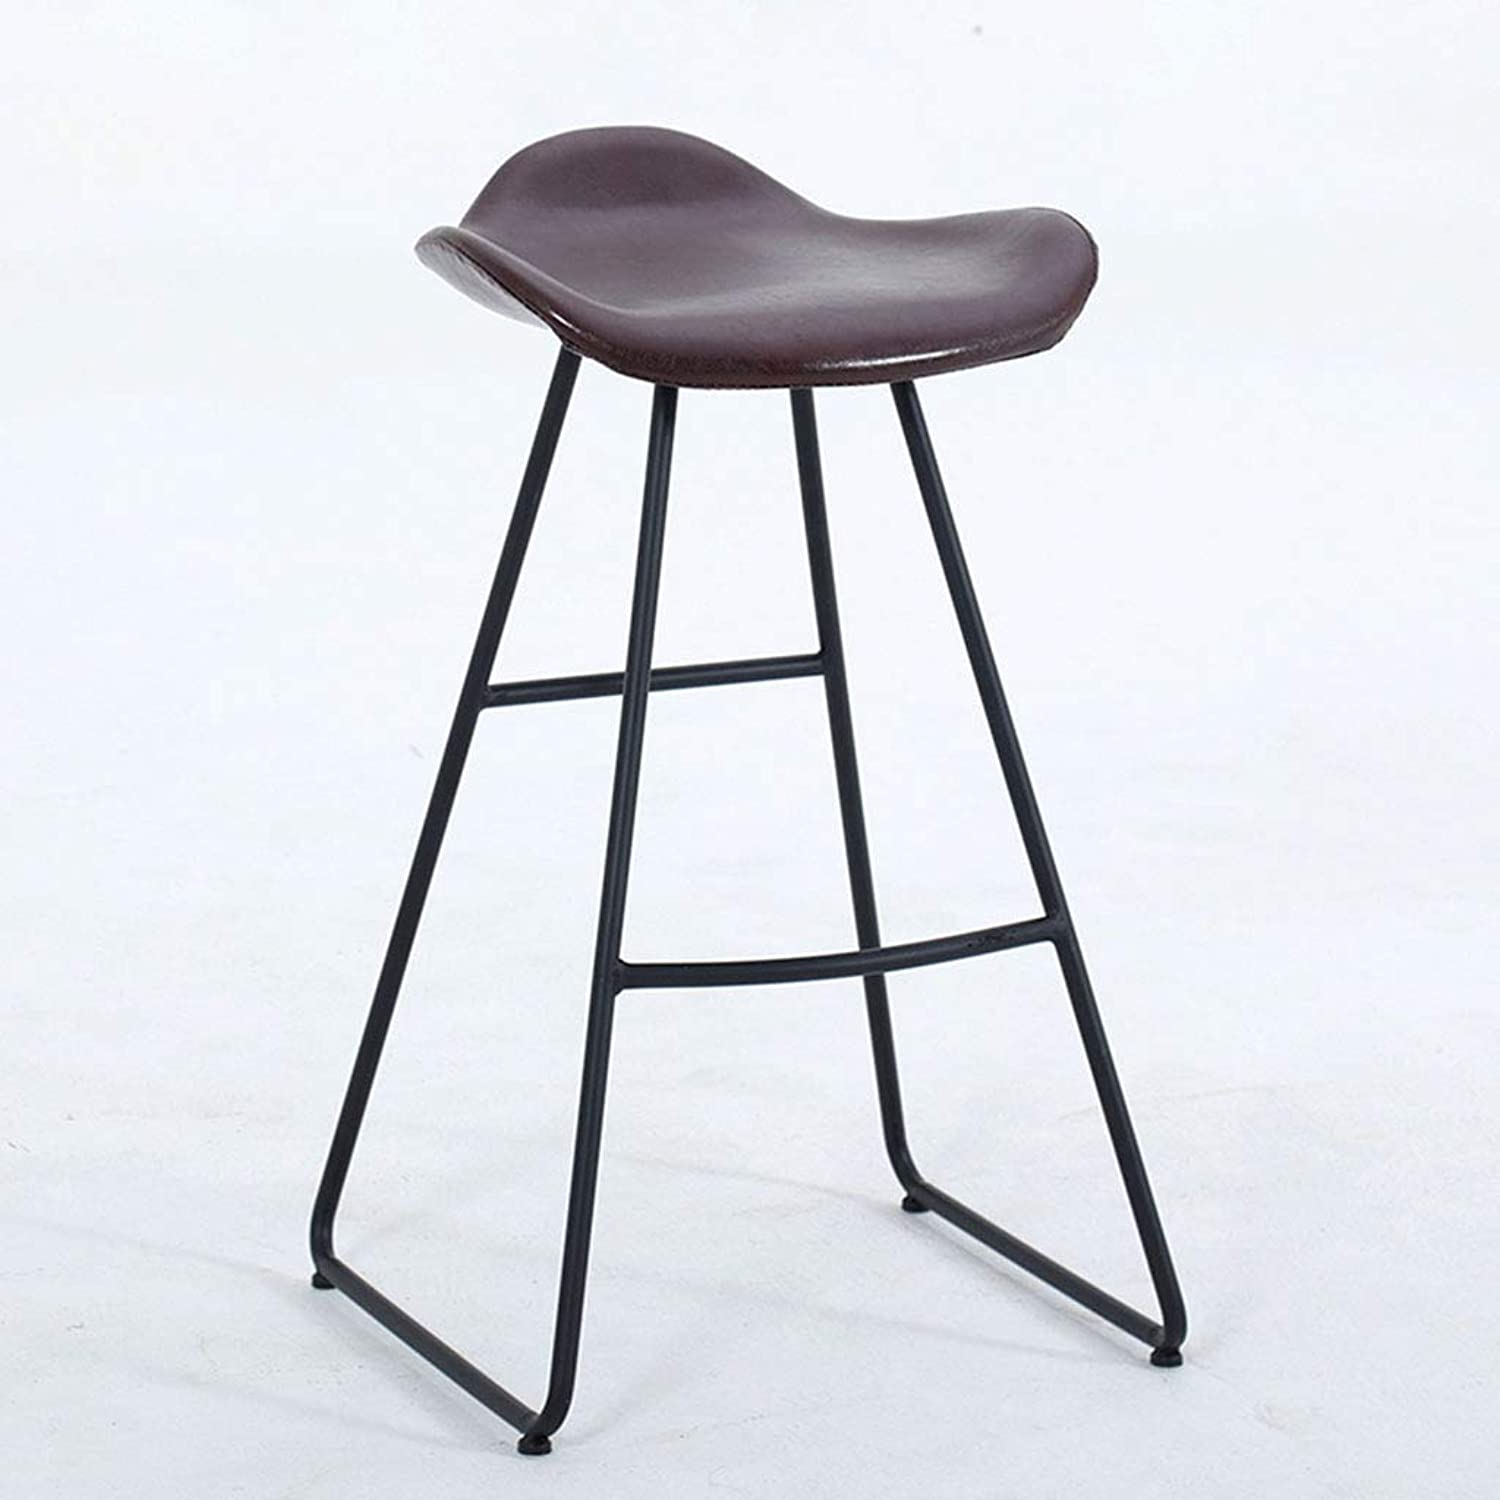 Garden Chair Iron Bar Stool Contemporary and Contracted, seat Height Choice of Colours Black,Brown,75cm